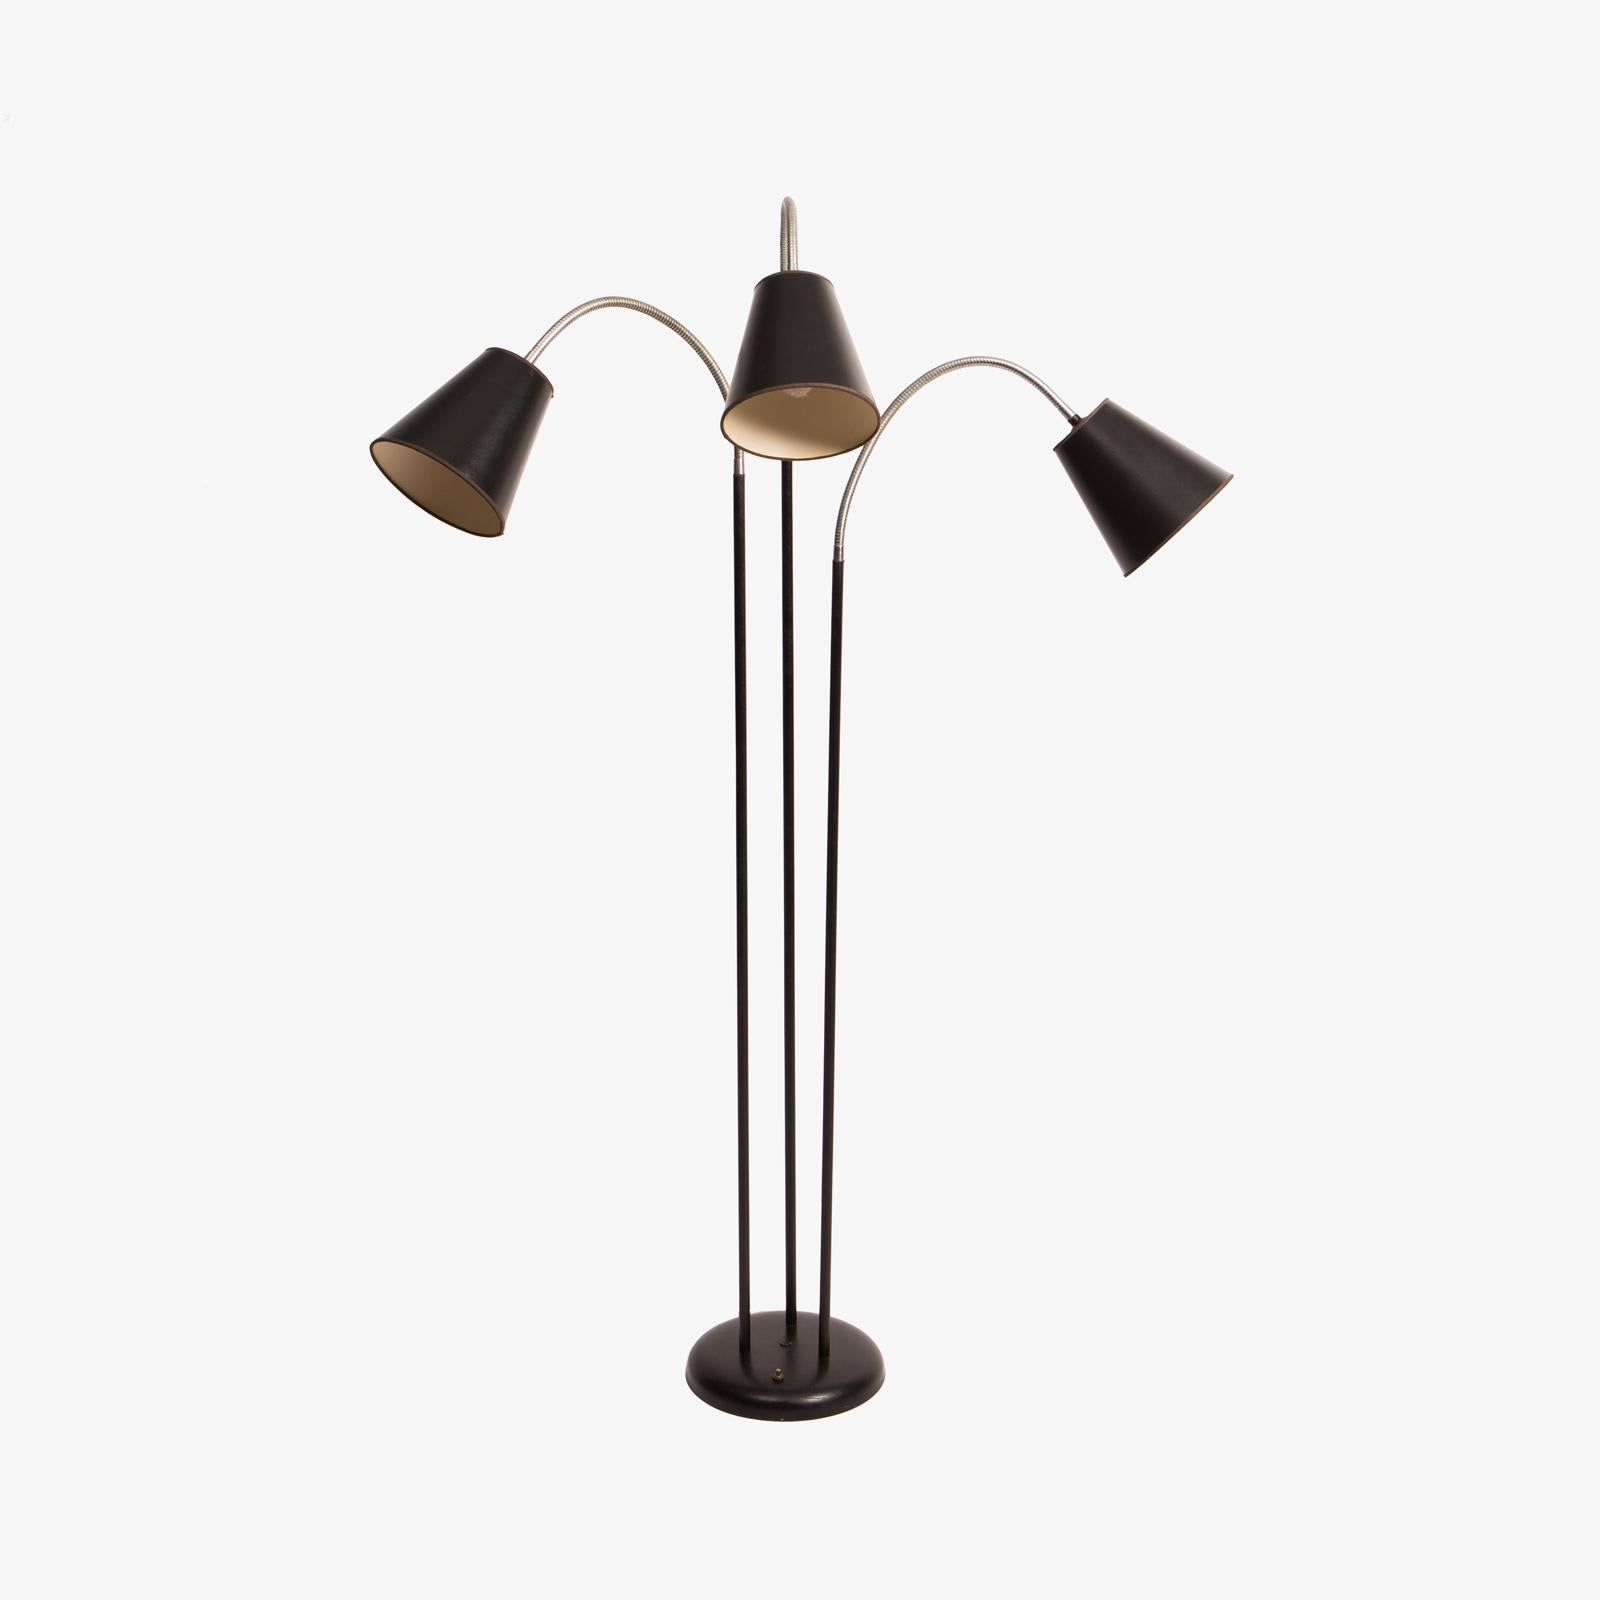 Three Arm Gooseneck Floor Lamp With Black Shades By David Wurster For  Raymor   Image 2